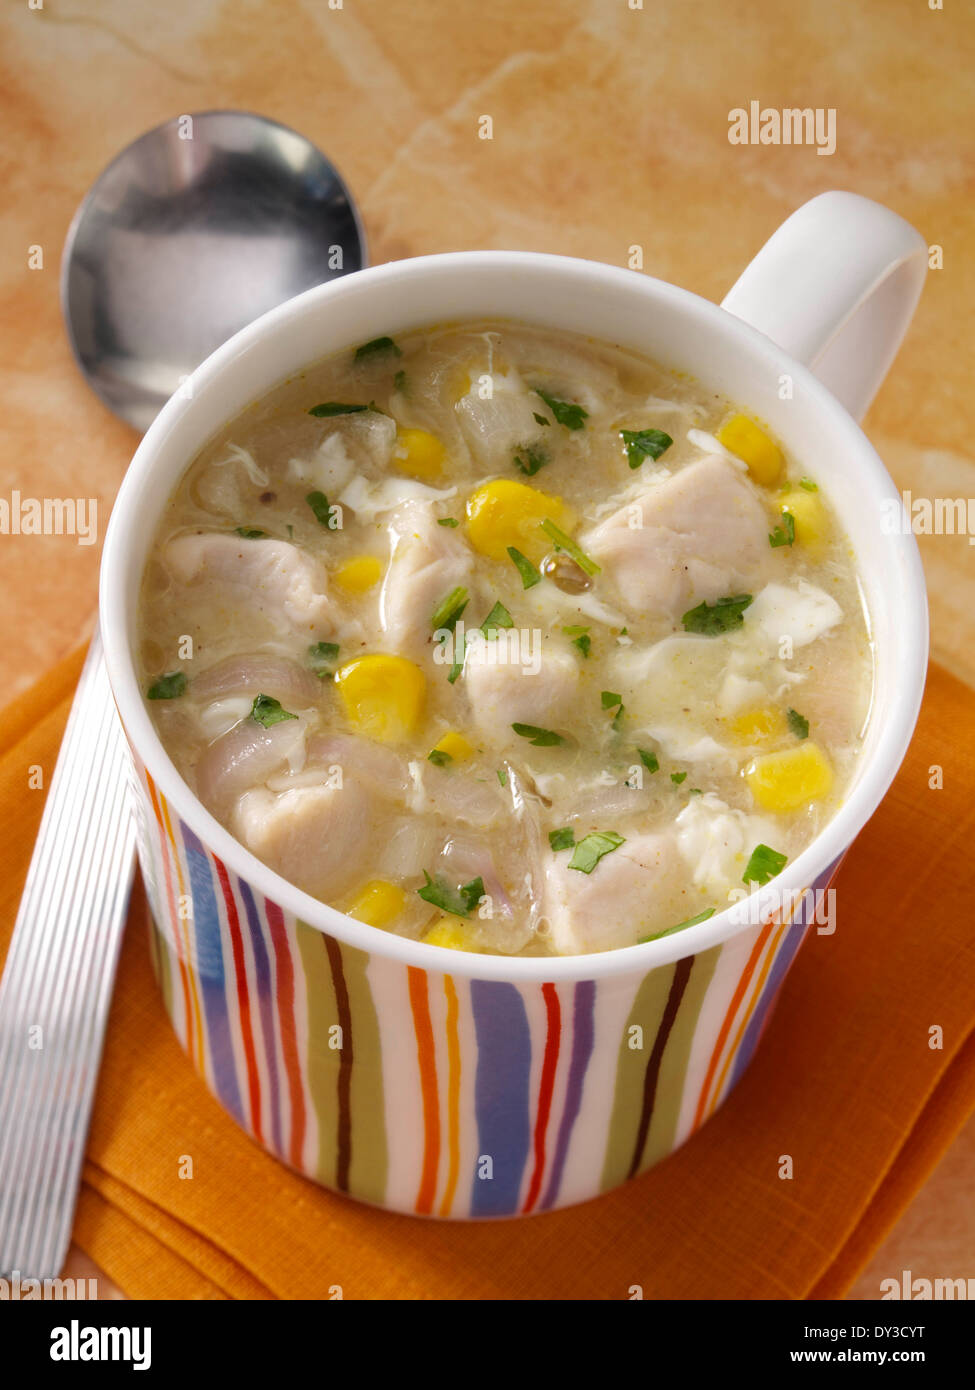 A mug of Chicken sweetcorn soup student meal - Stock Image